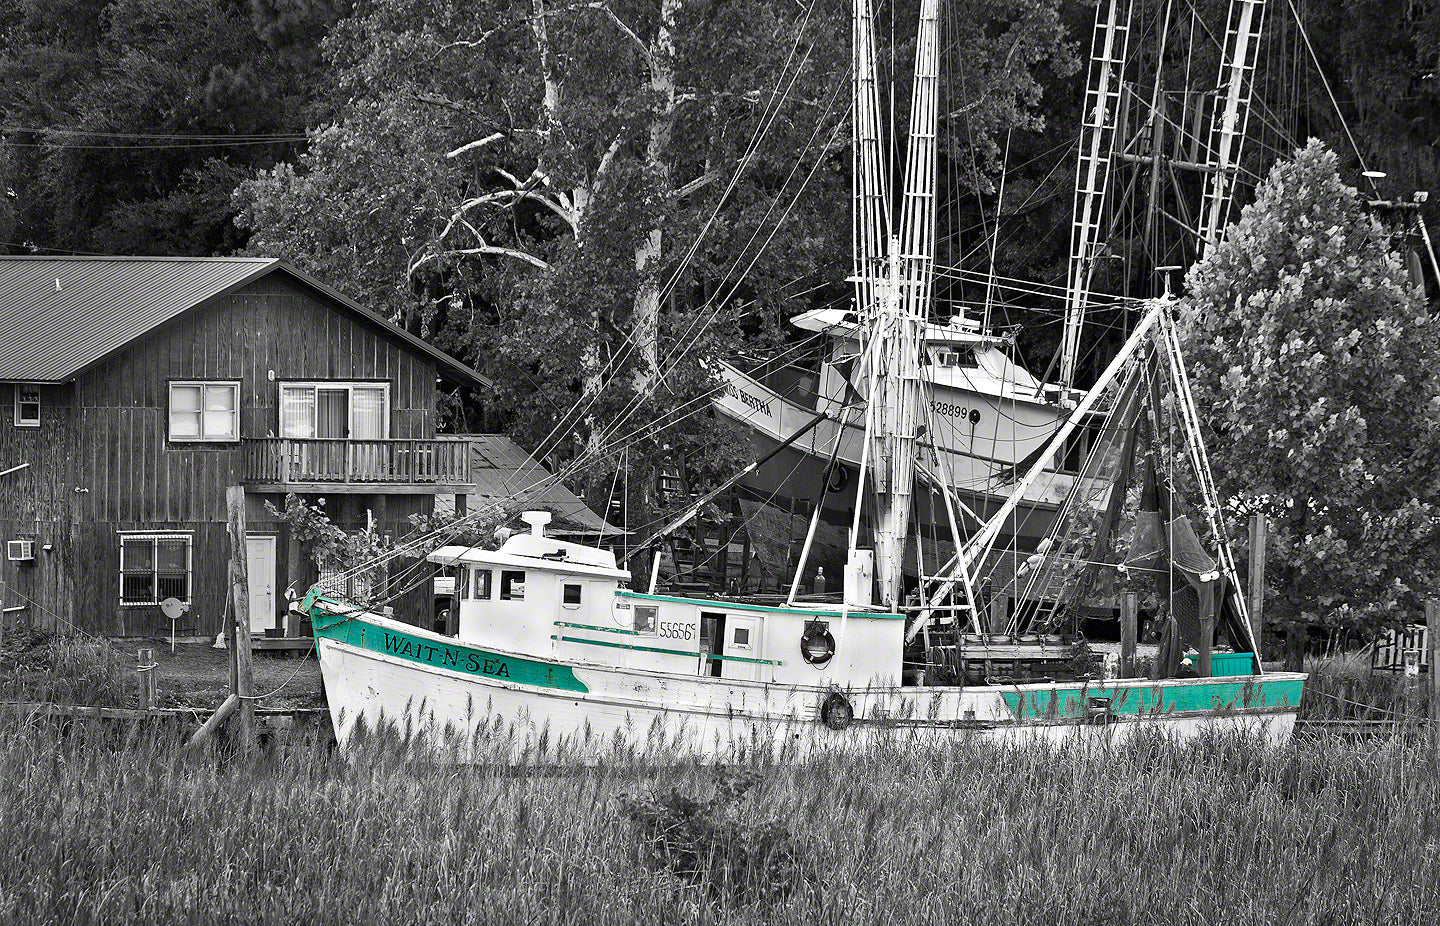 A Landscape Fine Art Photograph by Mike Ring of a shrimp Boat in Darien Georgia.